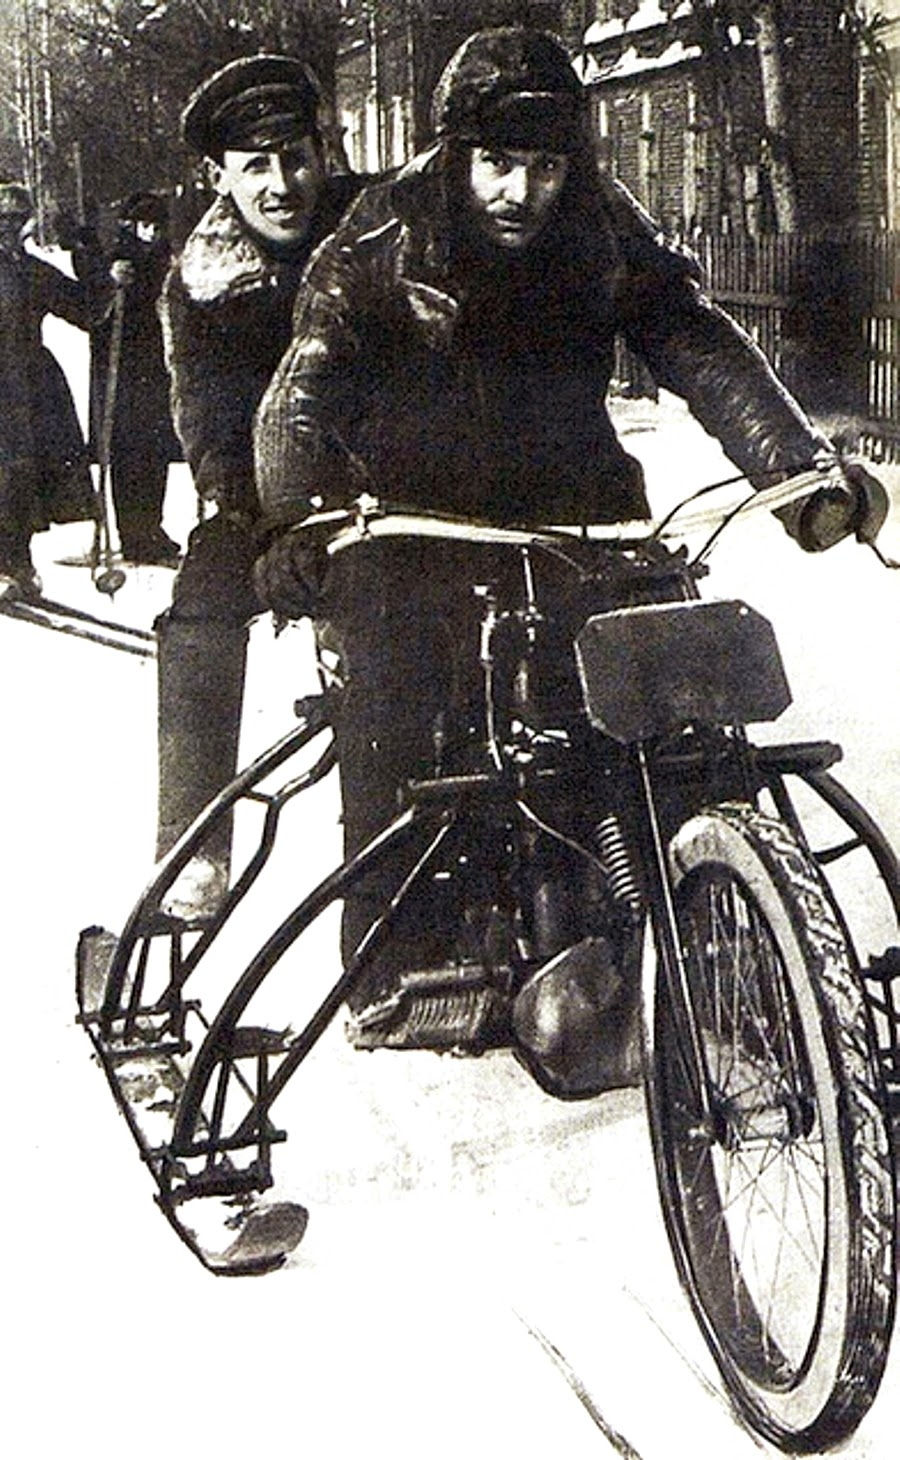 25 Vintage Photos of Motorcycles in the Russian Empire